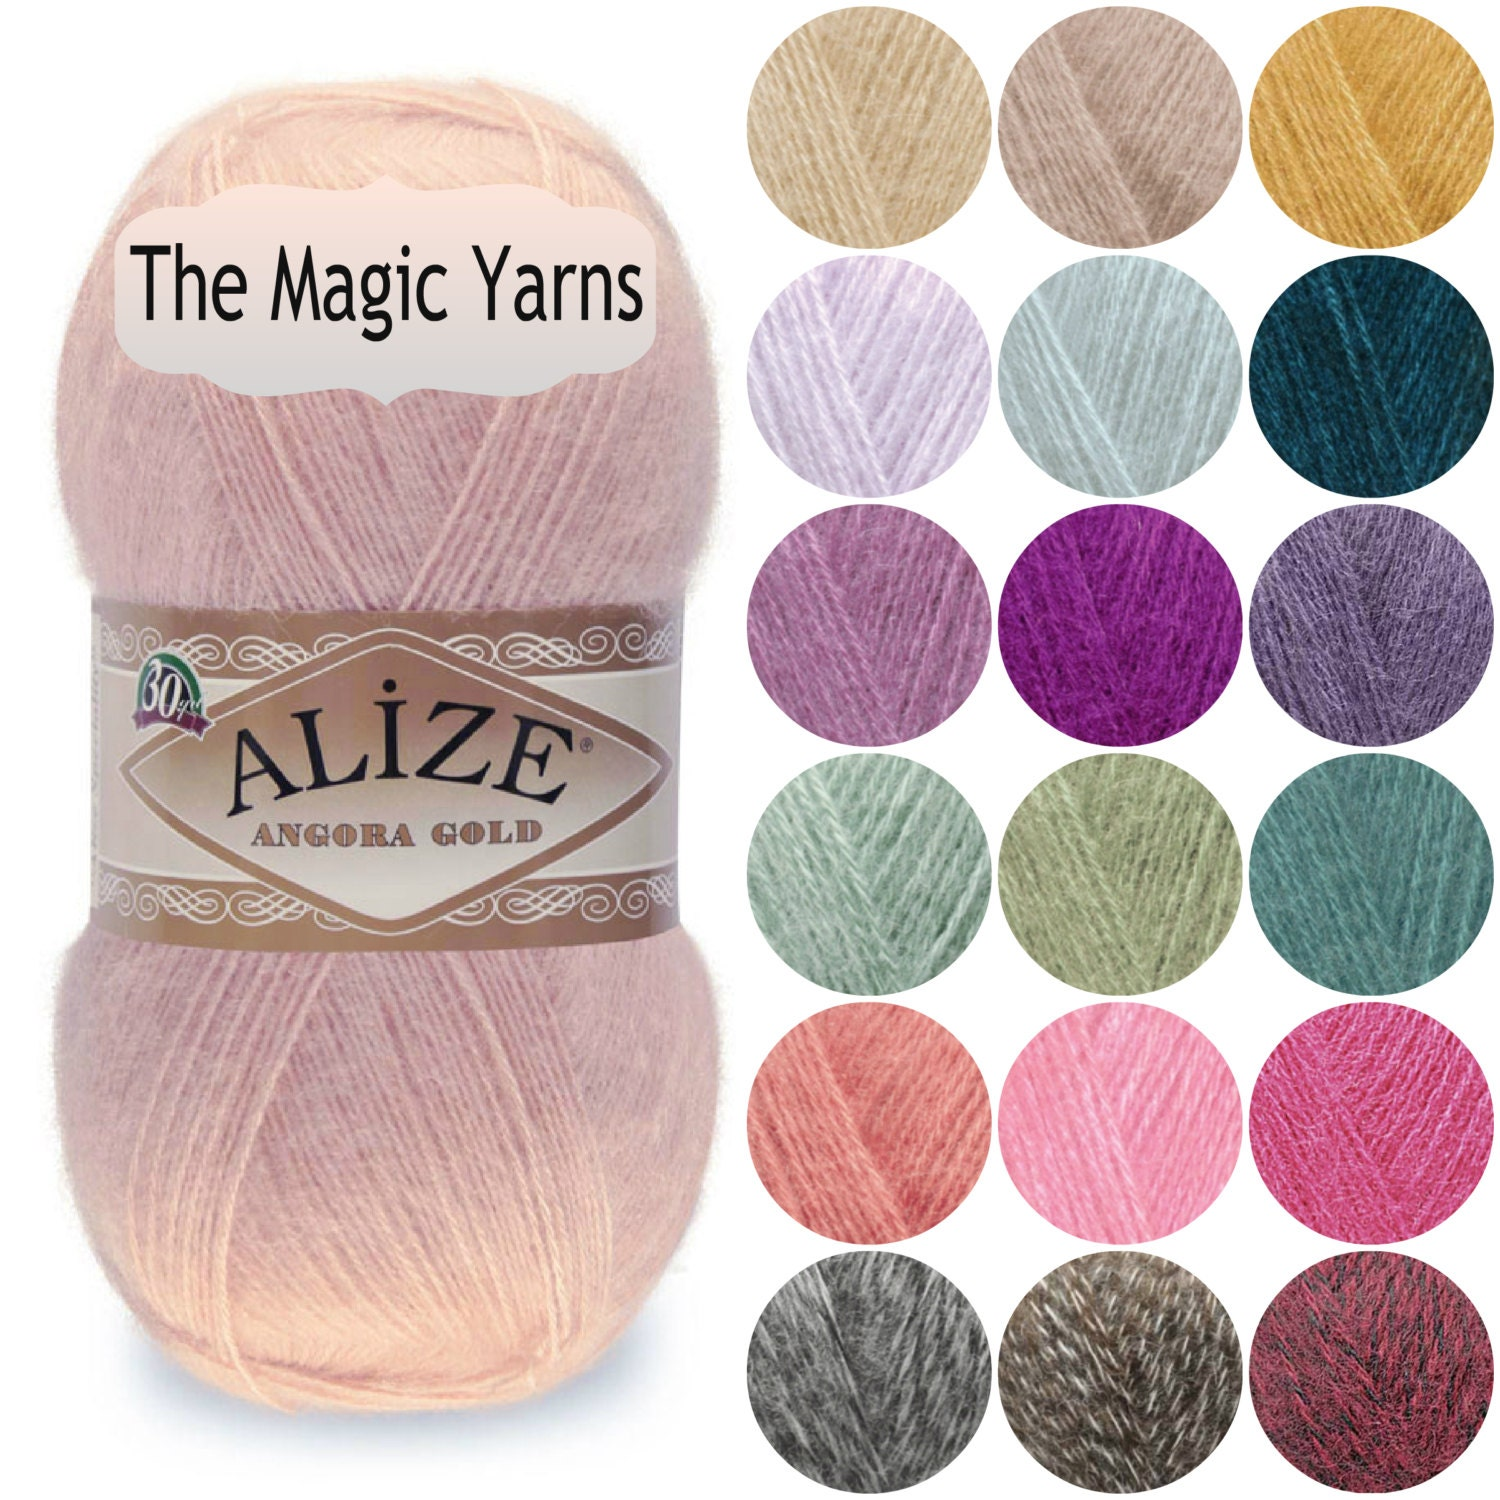 Yarn Alize: properties, features, reviews 13